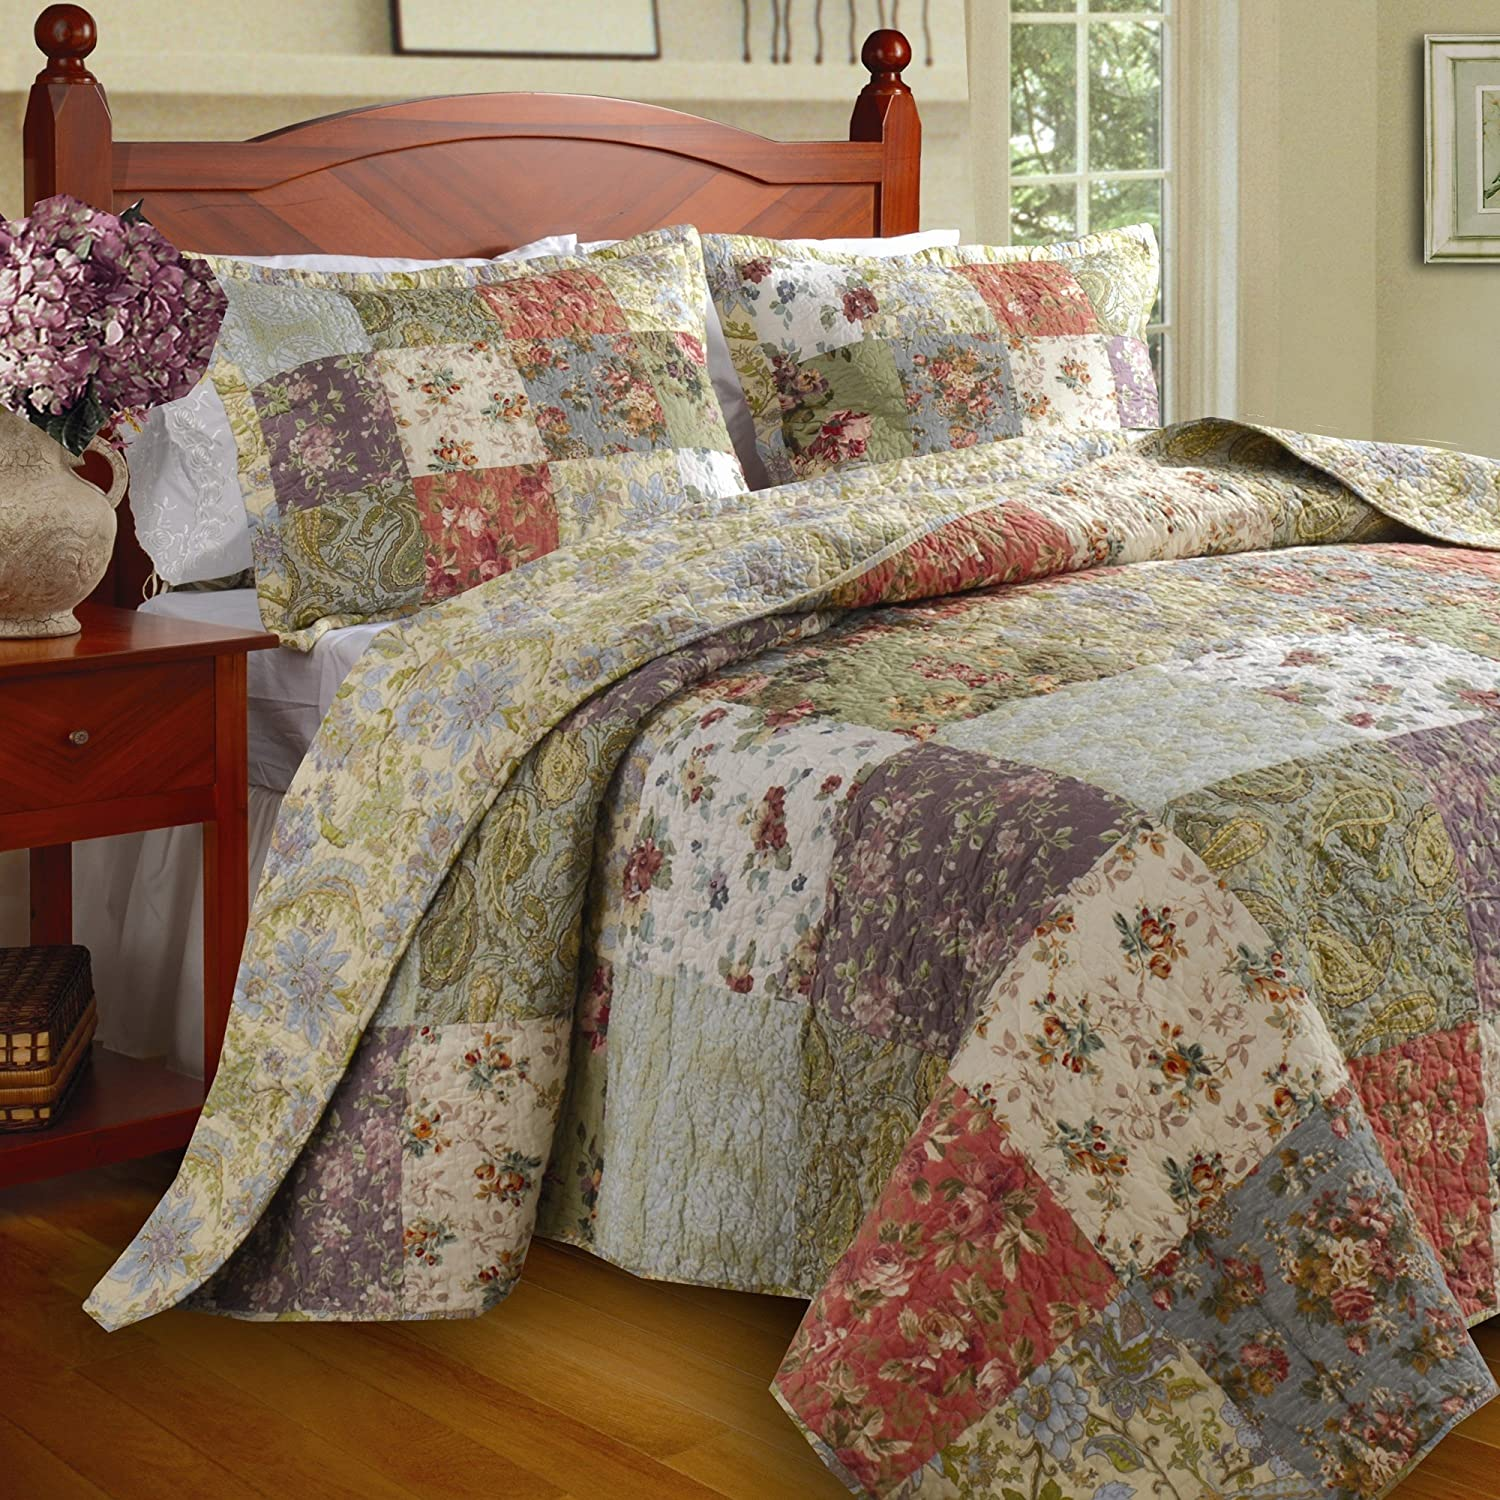 Amazon.com: Floral Patchwork Quilt & Bedding Set on Sale, 100 ... : king quilt bedding sets - Adamdwight.com